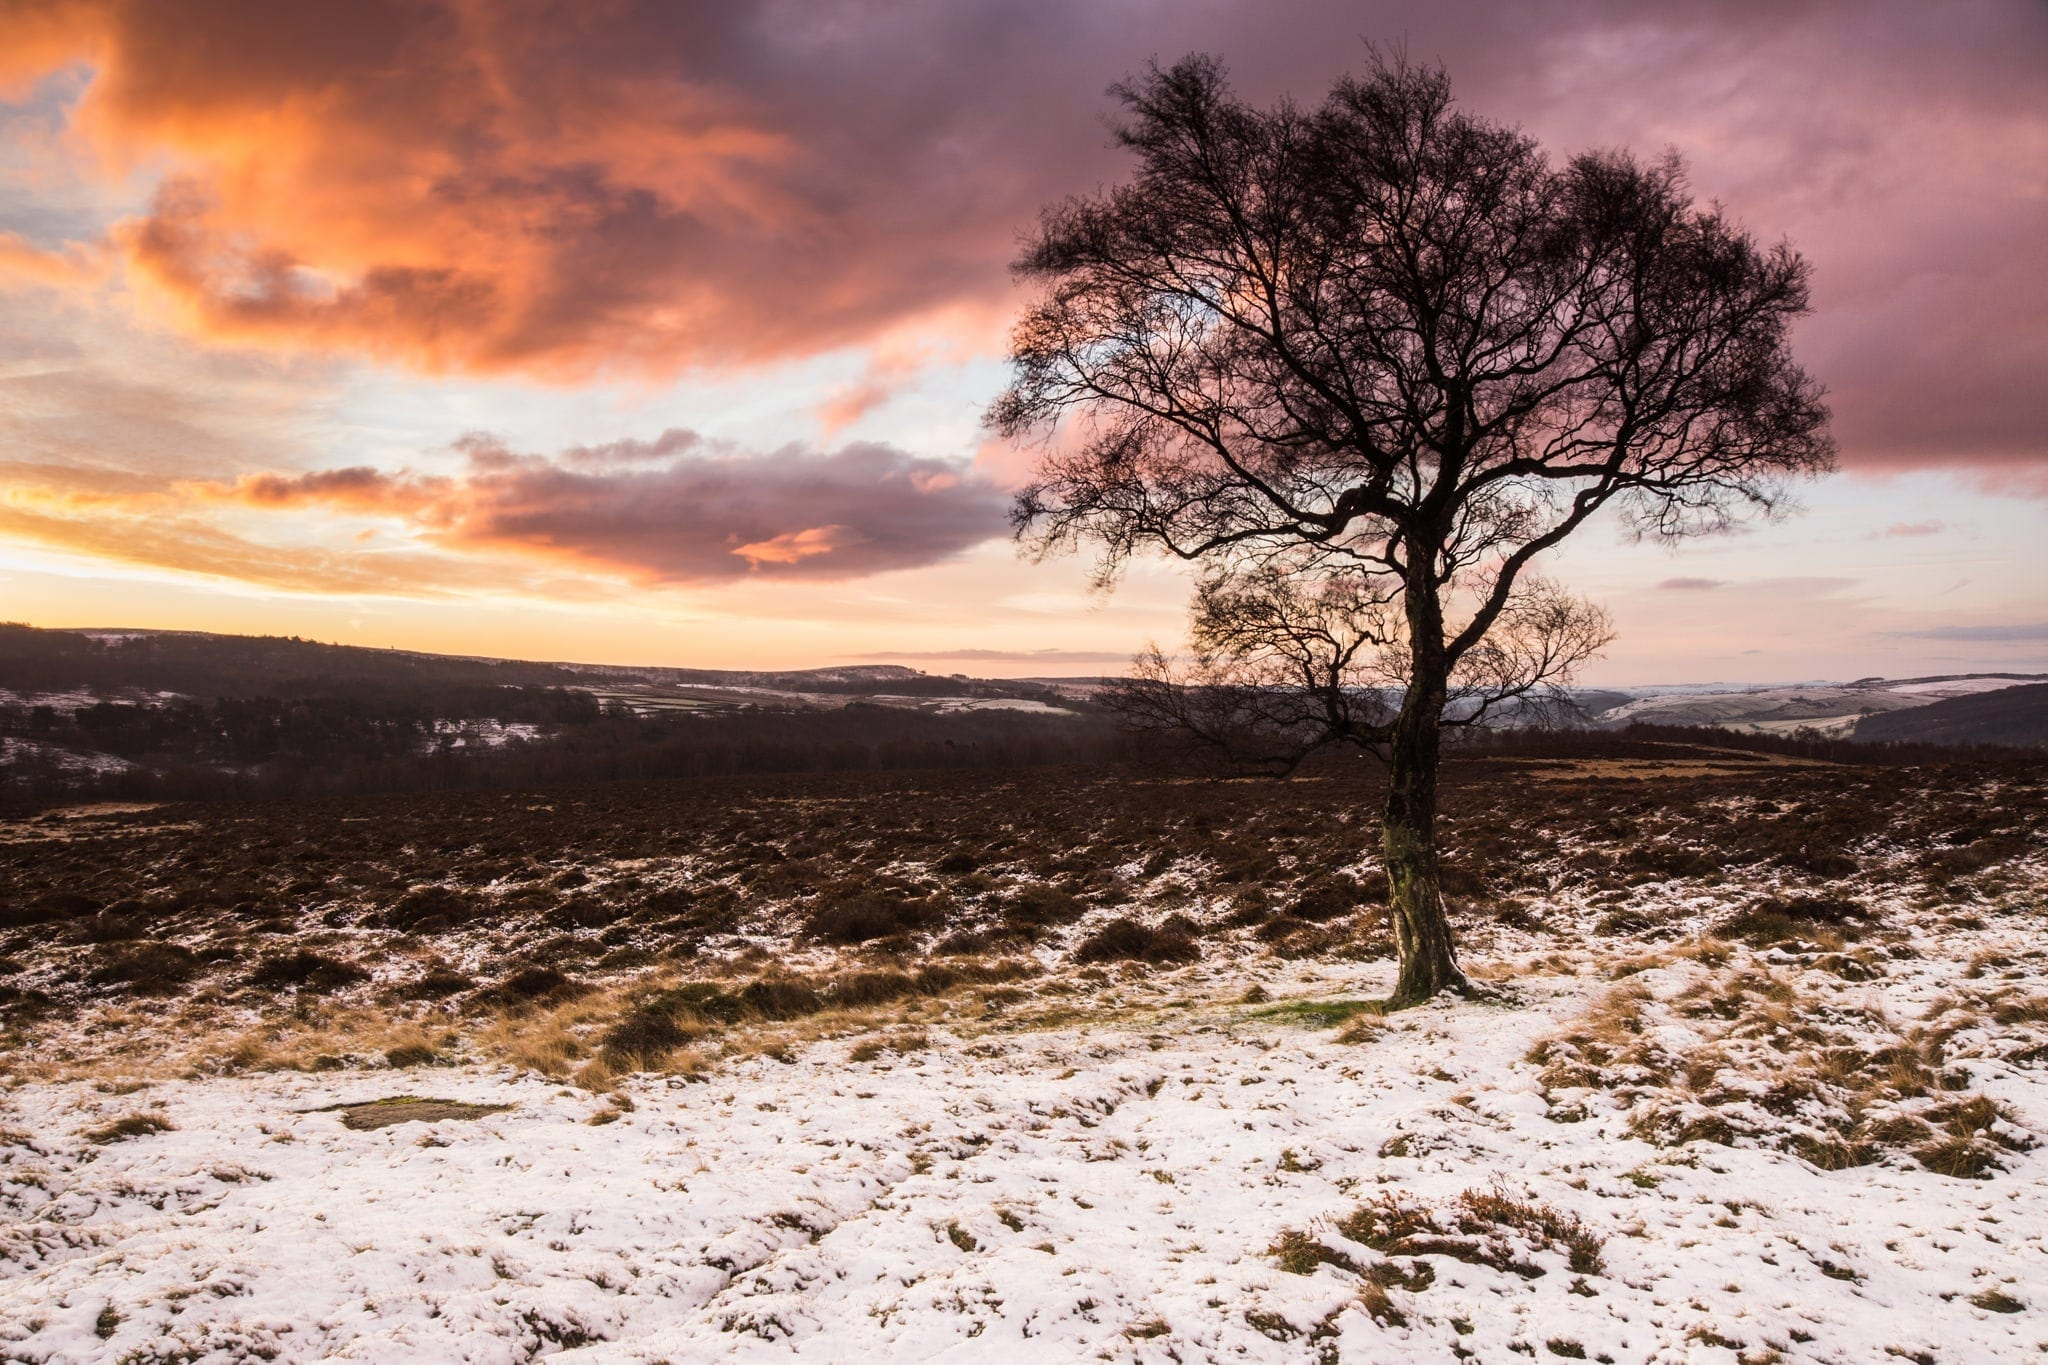 Lawrence Field Sunrise - Photographing the Peak District in Winter Photography Workshop